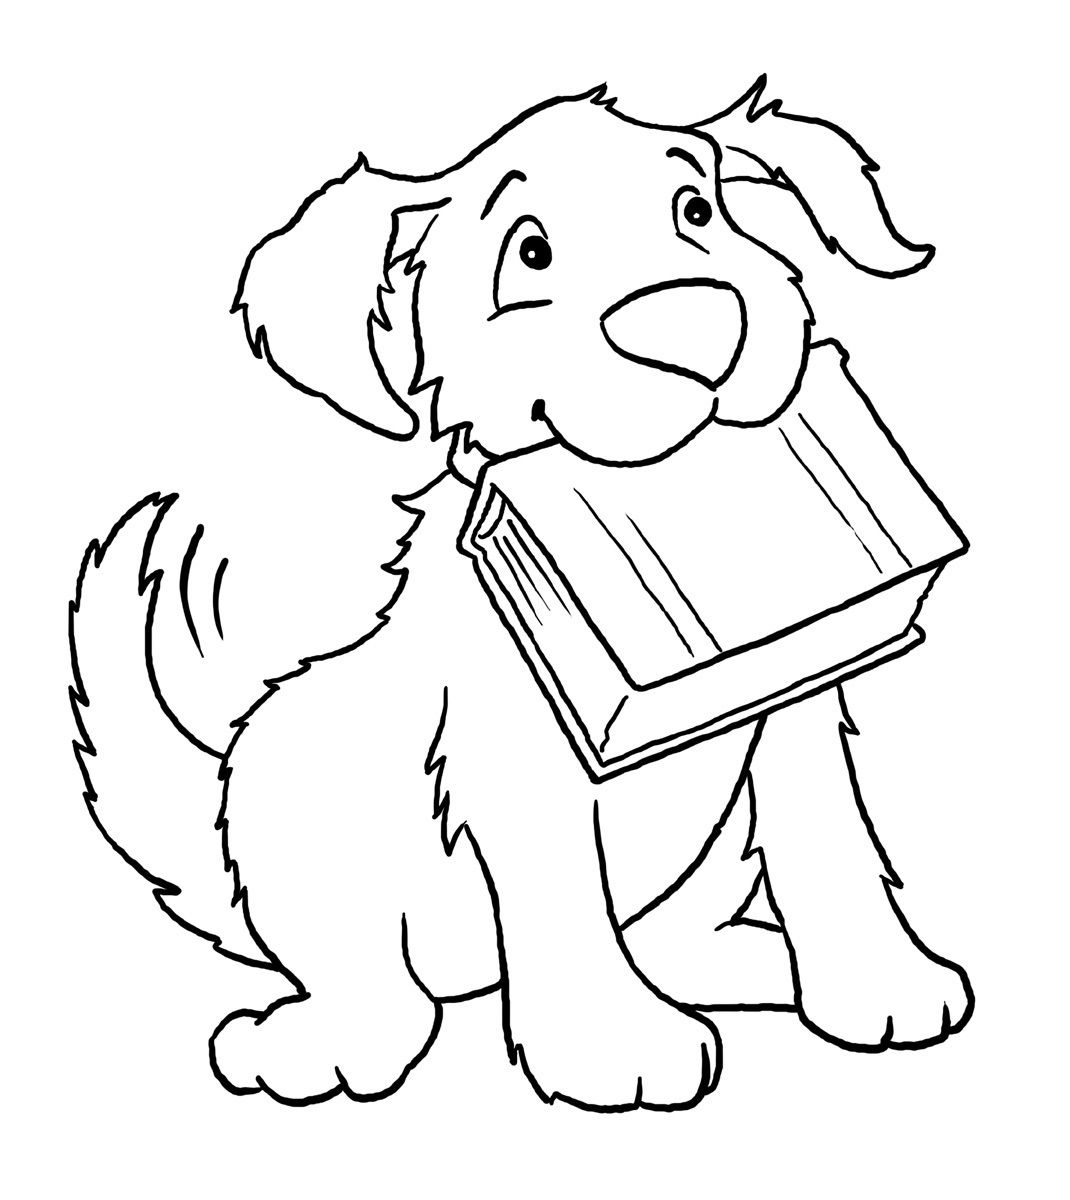 1070x1200 Dog Animal Coloring Book Pages Printable Activity Shelter